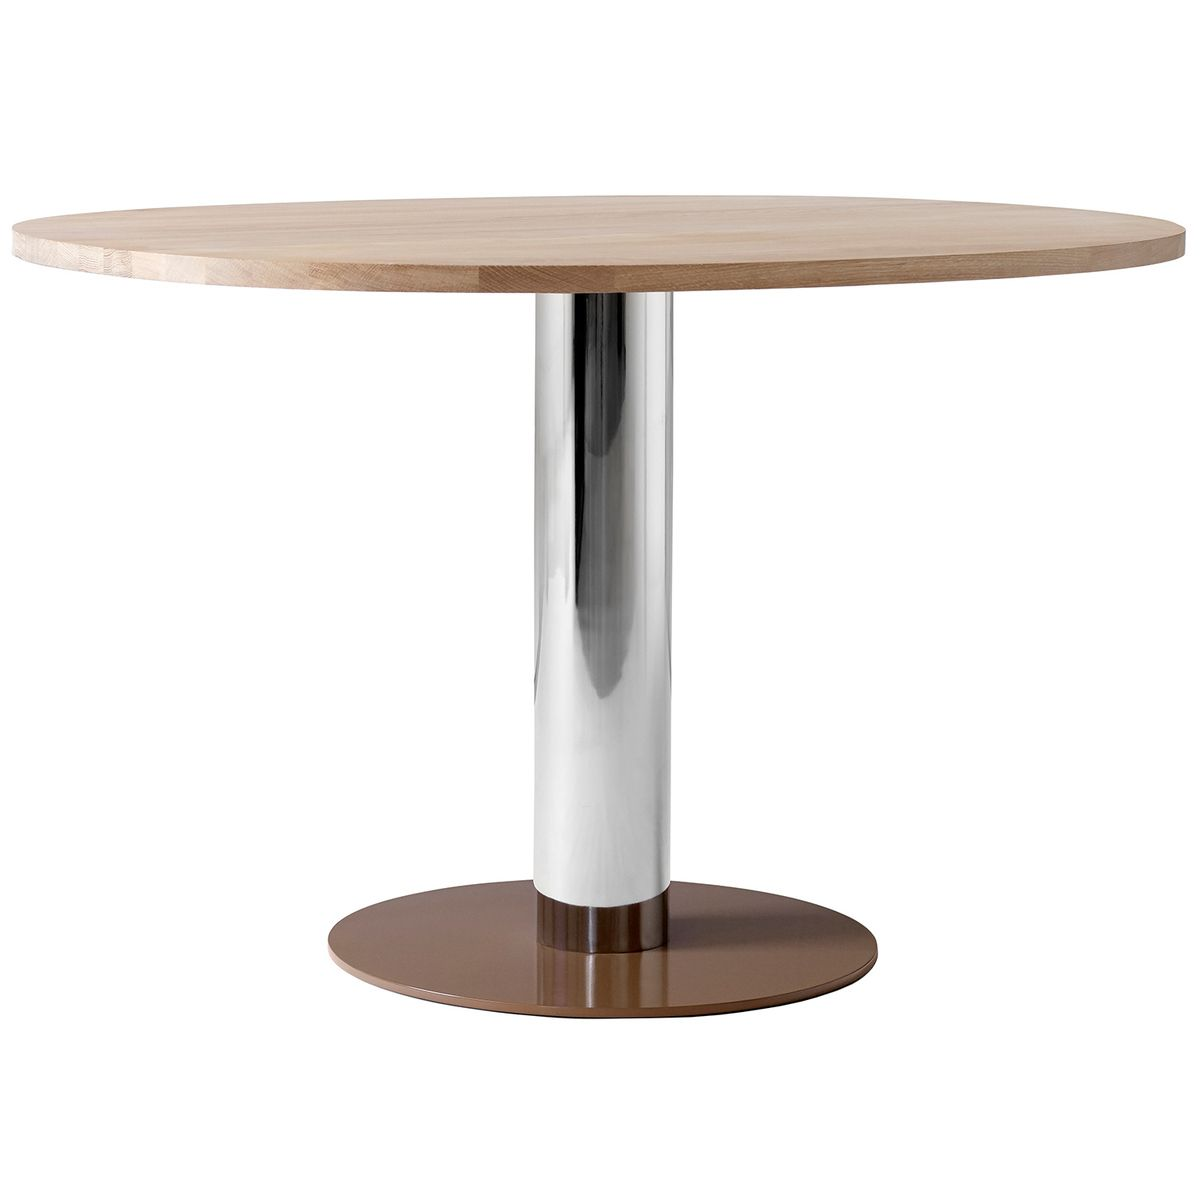 Mezcla Jh22 Dining Table Oak Chrome Clay Dining Table Table Nordic Design Kitchen [ 1200 x 1200 Pixel ]